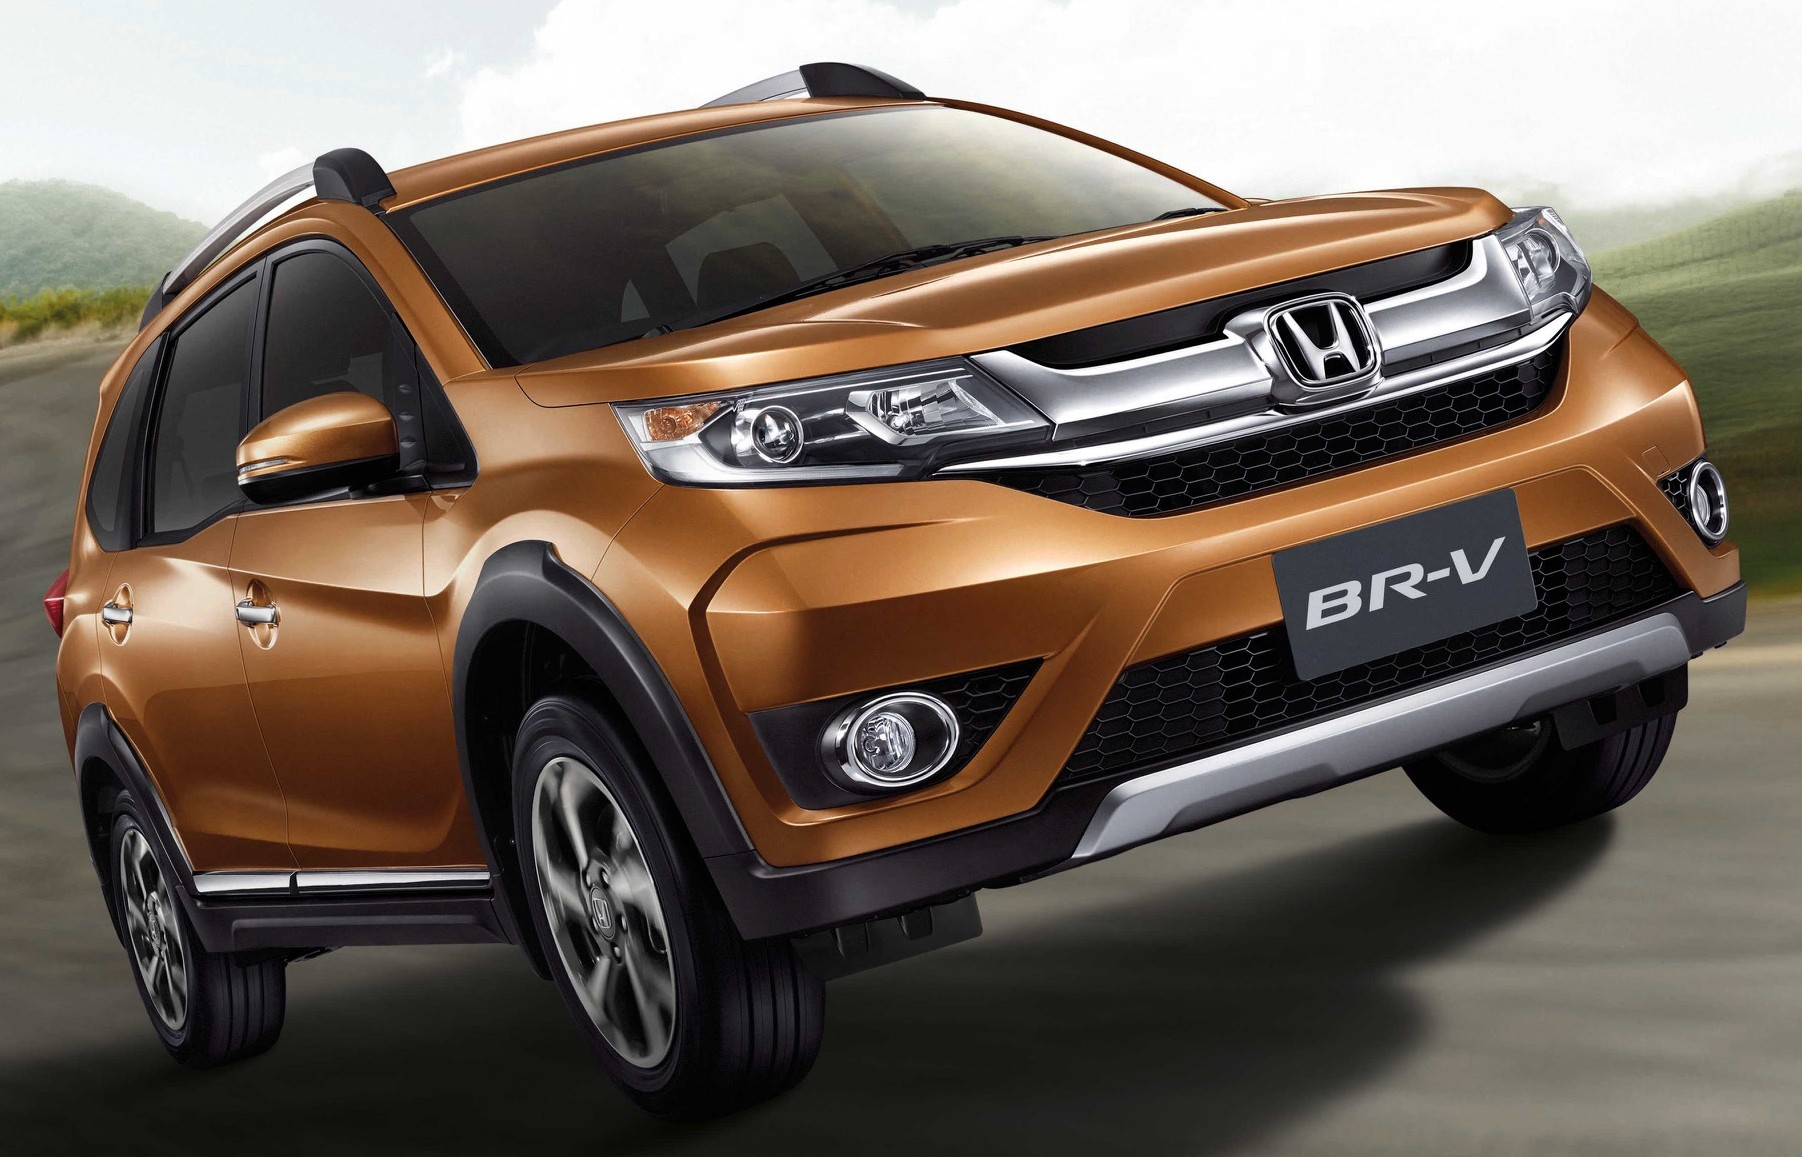 Cars For Sale Under 6000 >> Honda BR-V goes on sale in Thailand - five- and seven-seat ...